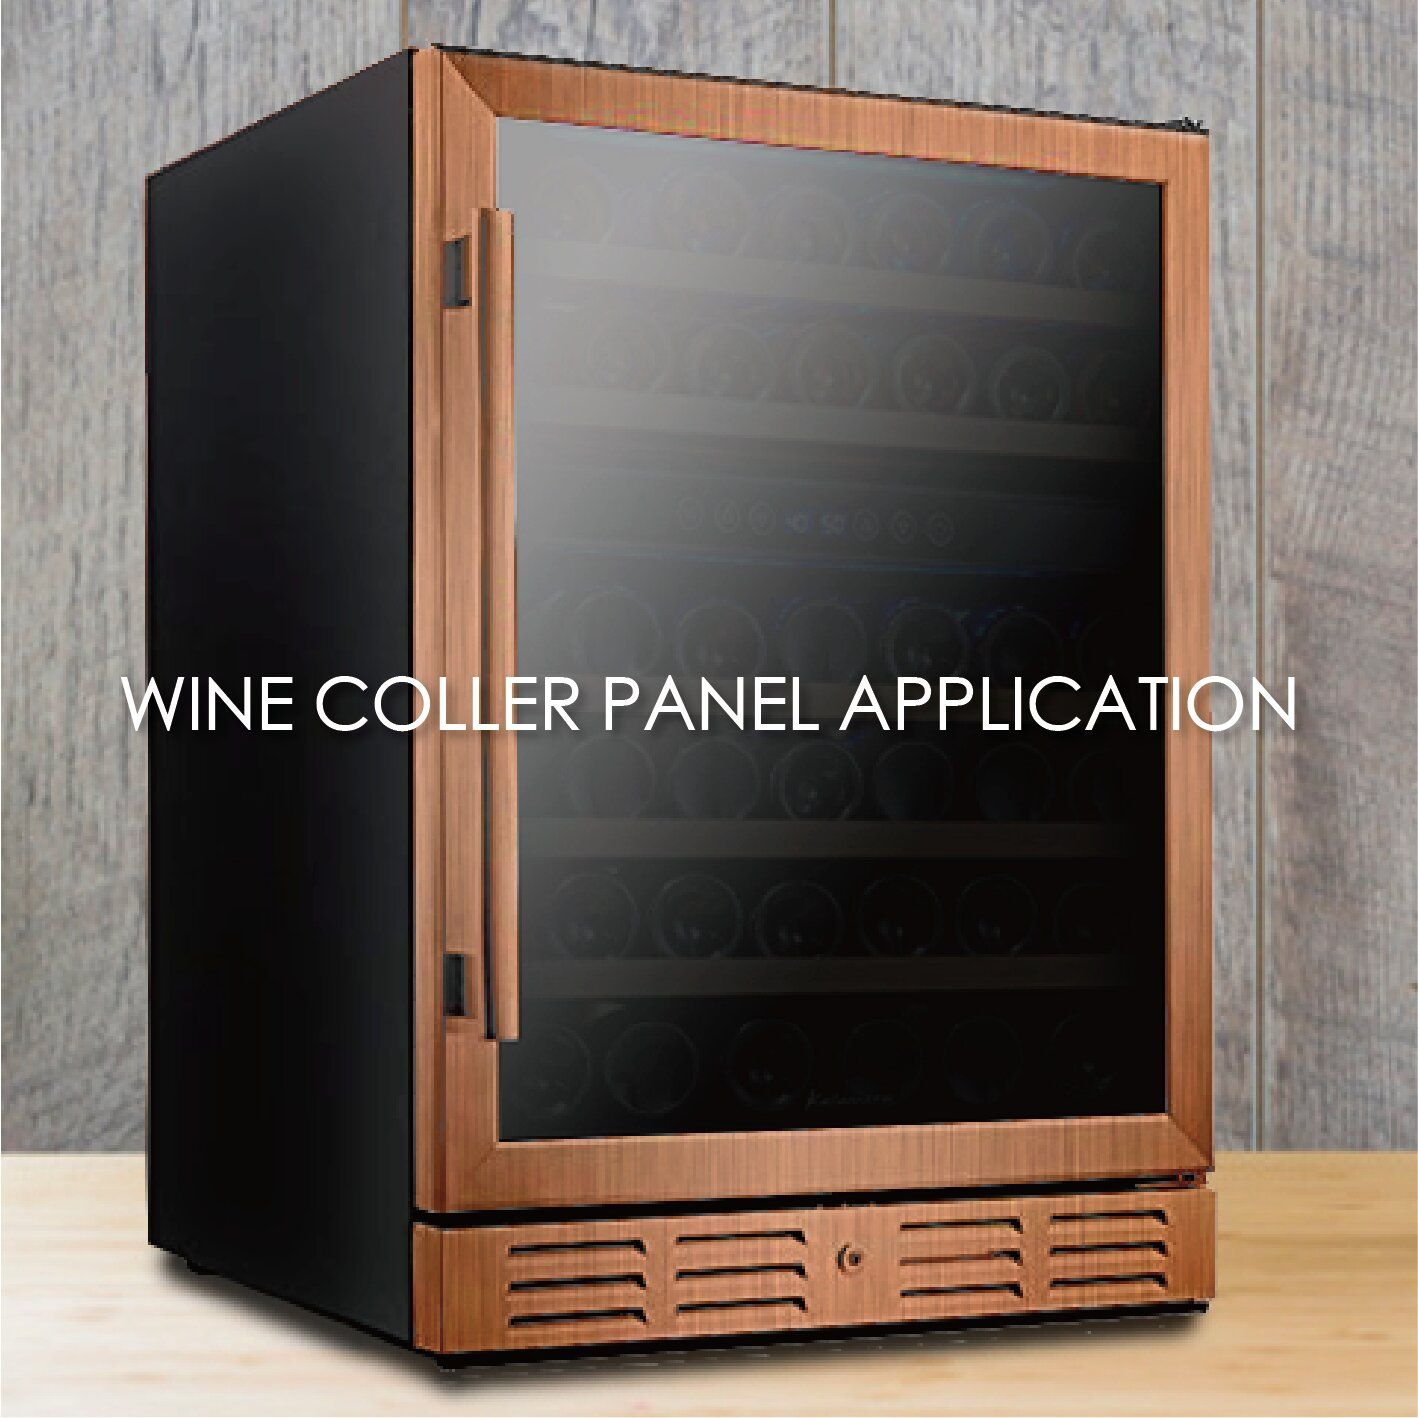 The use of wood grain coated metal to make wine cooler panels can increase the aesthetics and durability